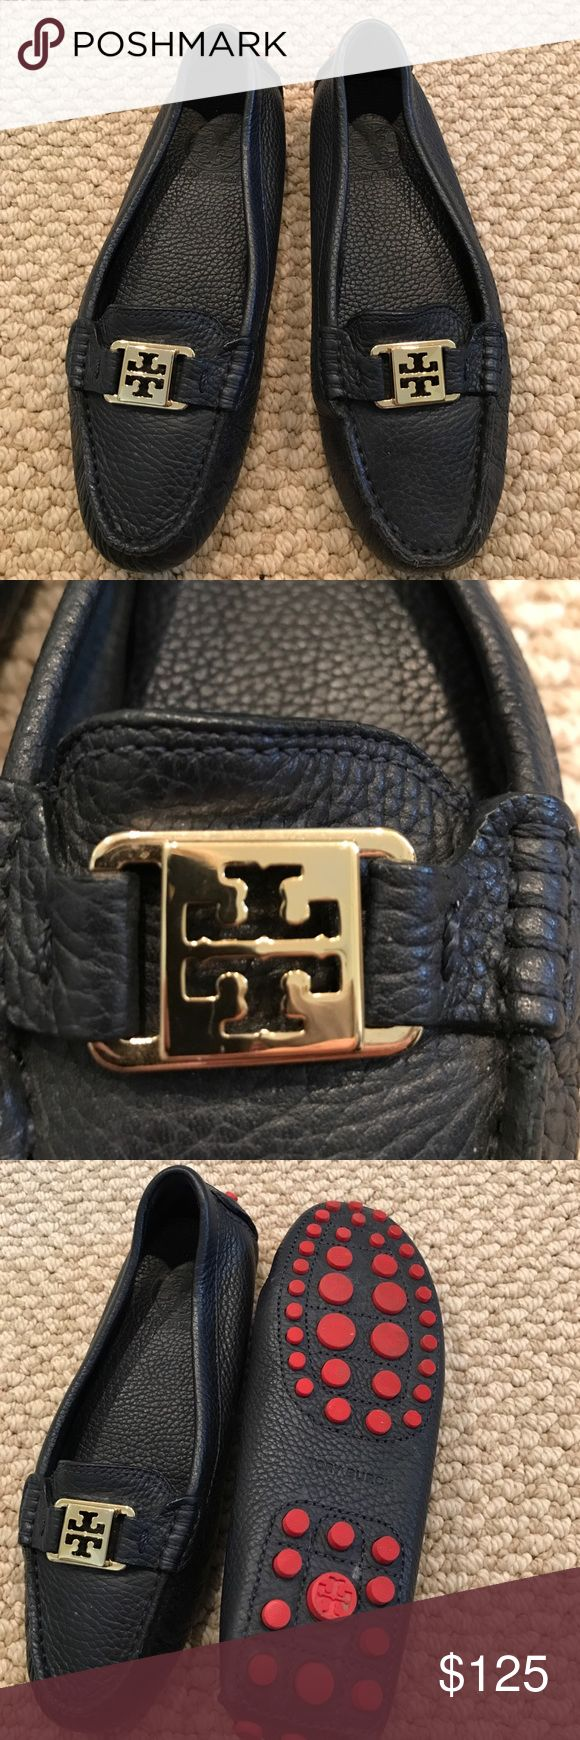 Tory Burch Kendrick Driving Loafer size 6 Tory Burch Kendrick Driving Loafer. Navy size 6, worn once. Beautiful tumbled leather, red rubber soles. Excellent condition, barely any signs of wear Tory Burch Shoes Flats & Loafers